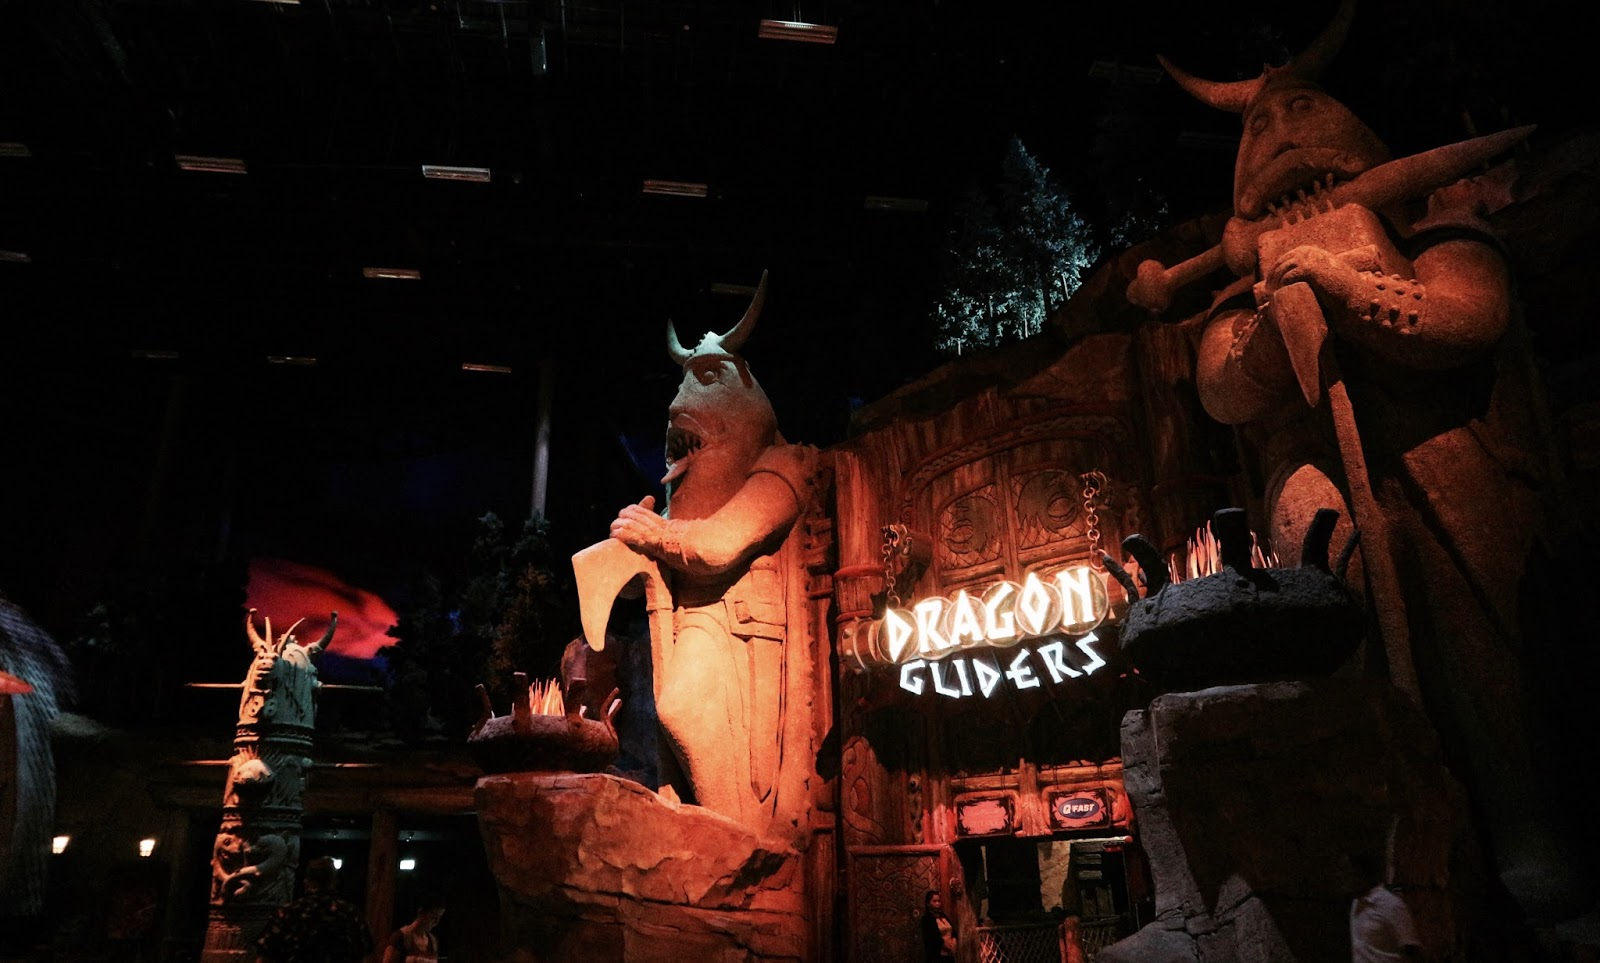 Image Of Dragon Gliders Ride Entrance Motiongate